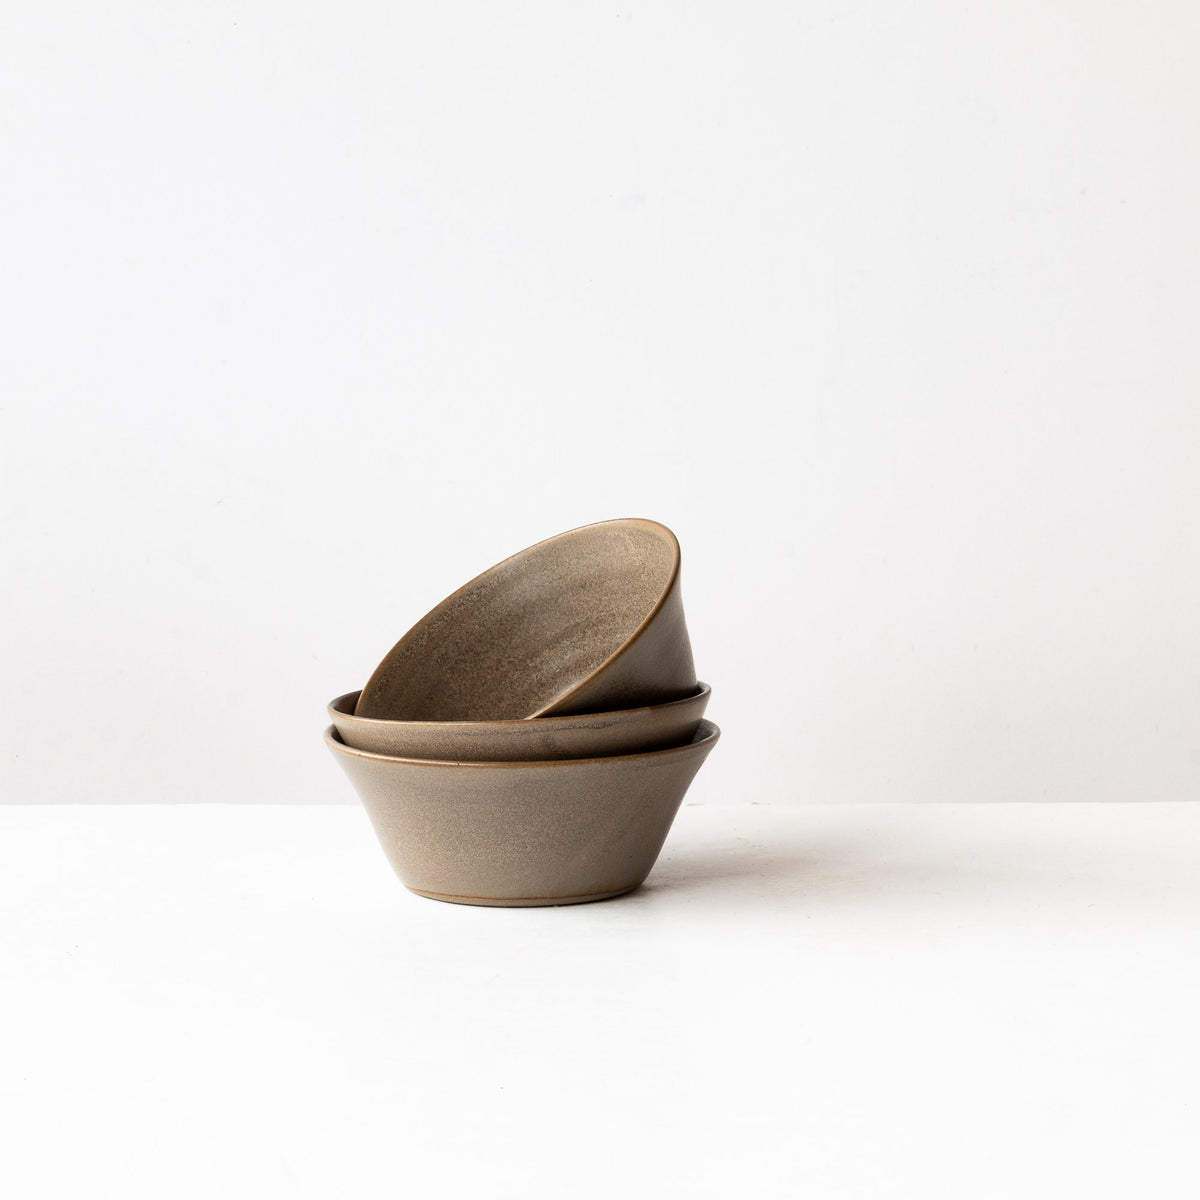 Taupe - 3 Handmade Grey Stoneware Blooming Bowls - Sold by Chic & Basta